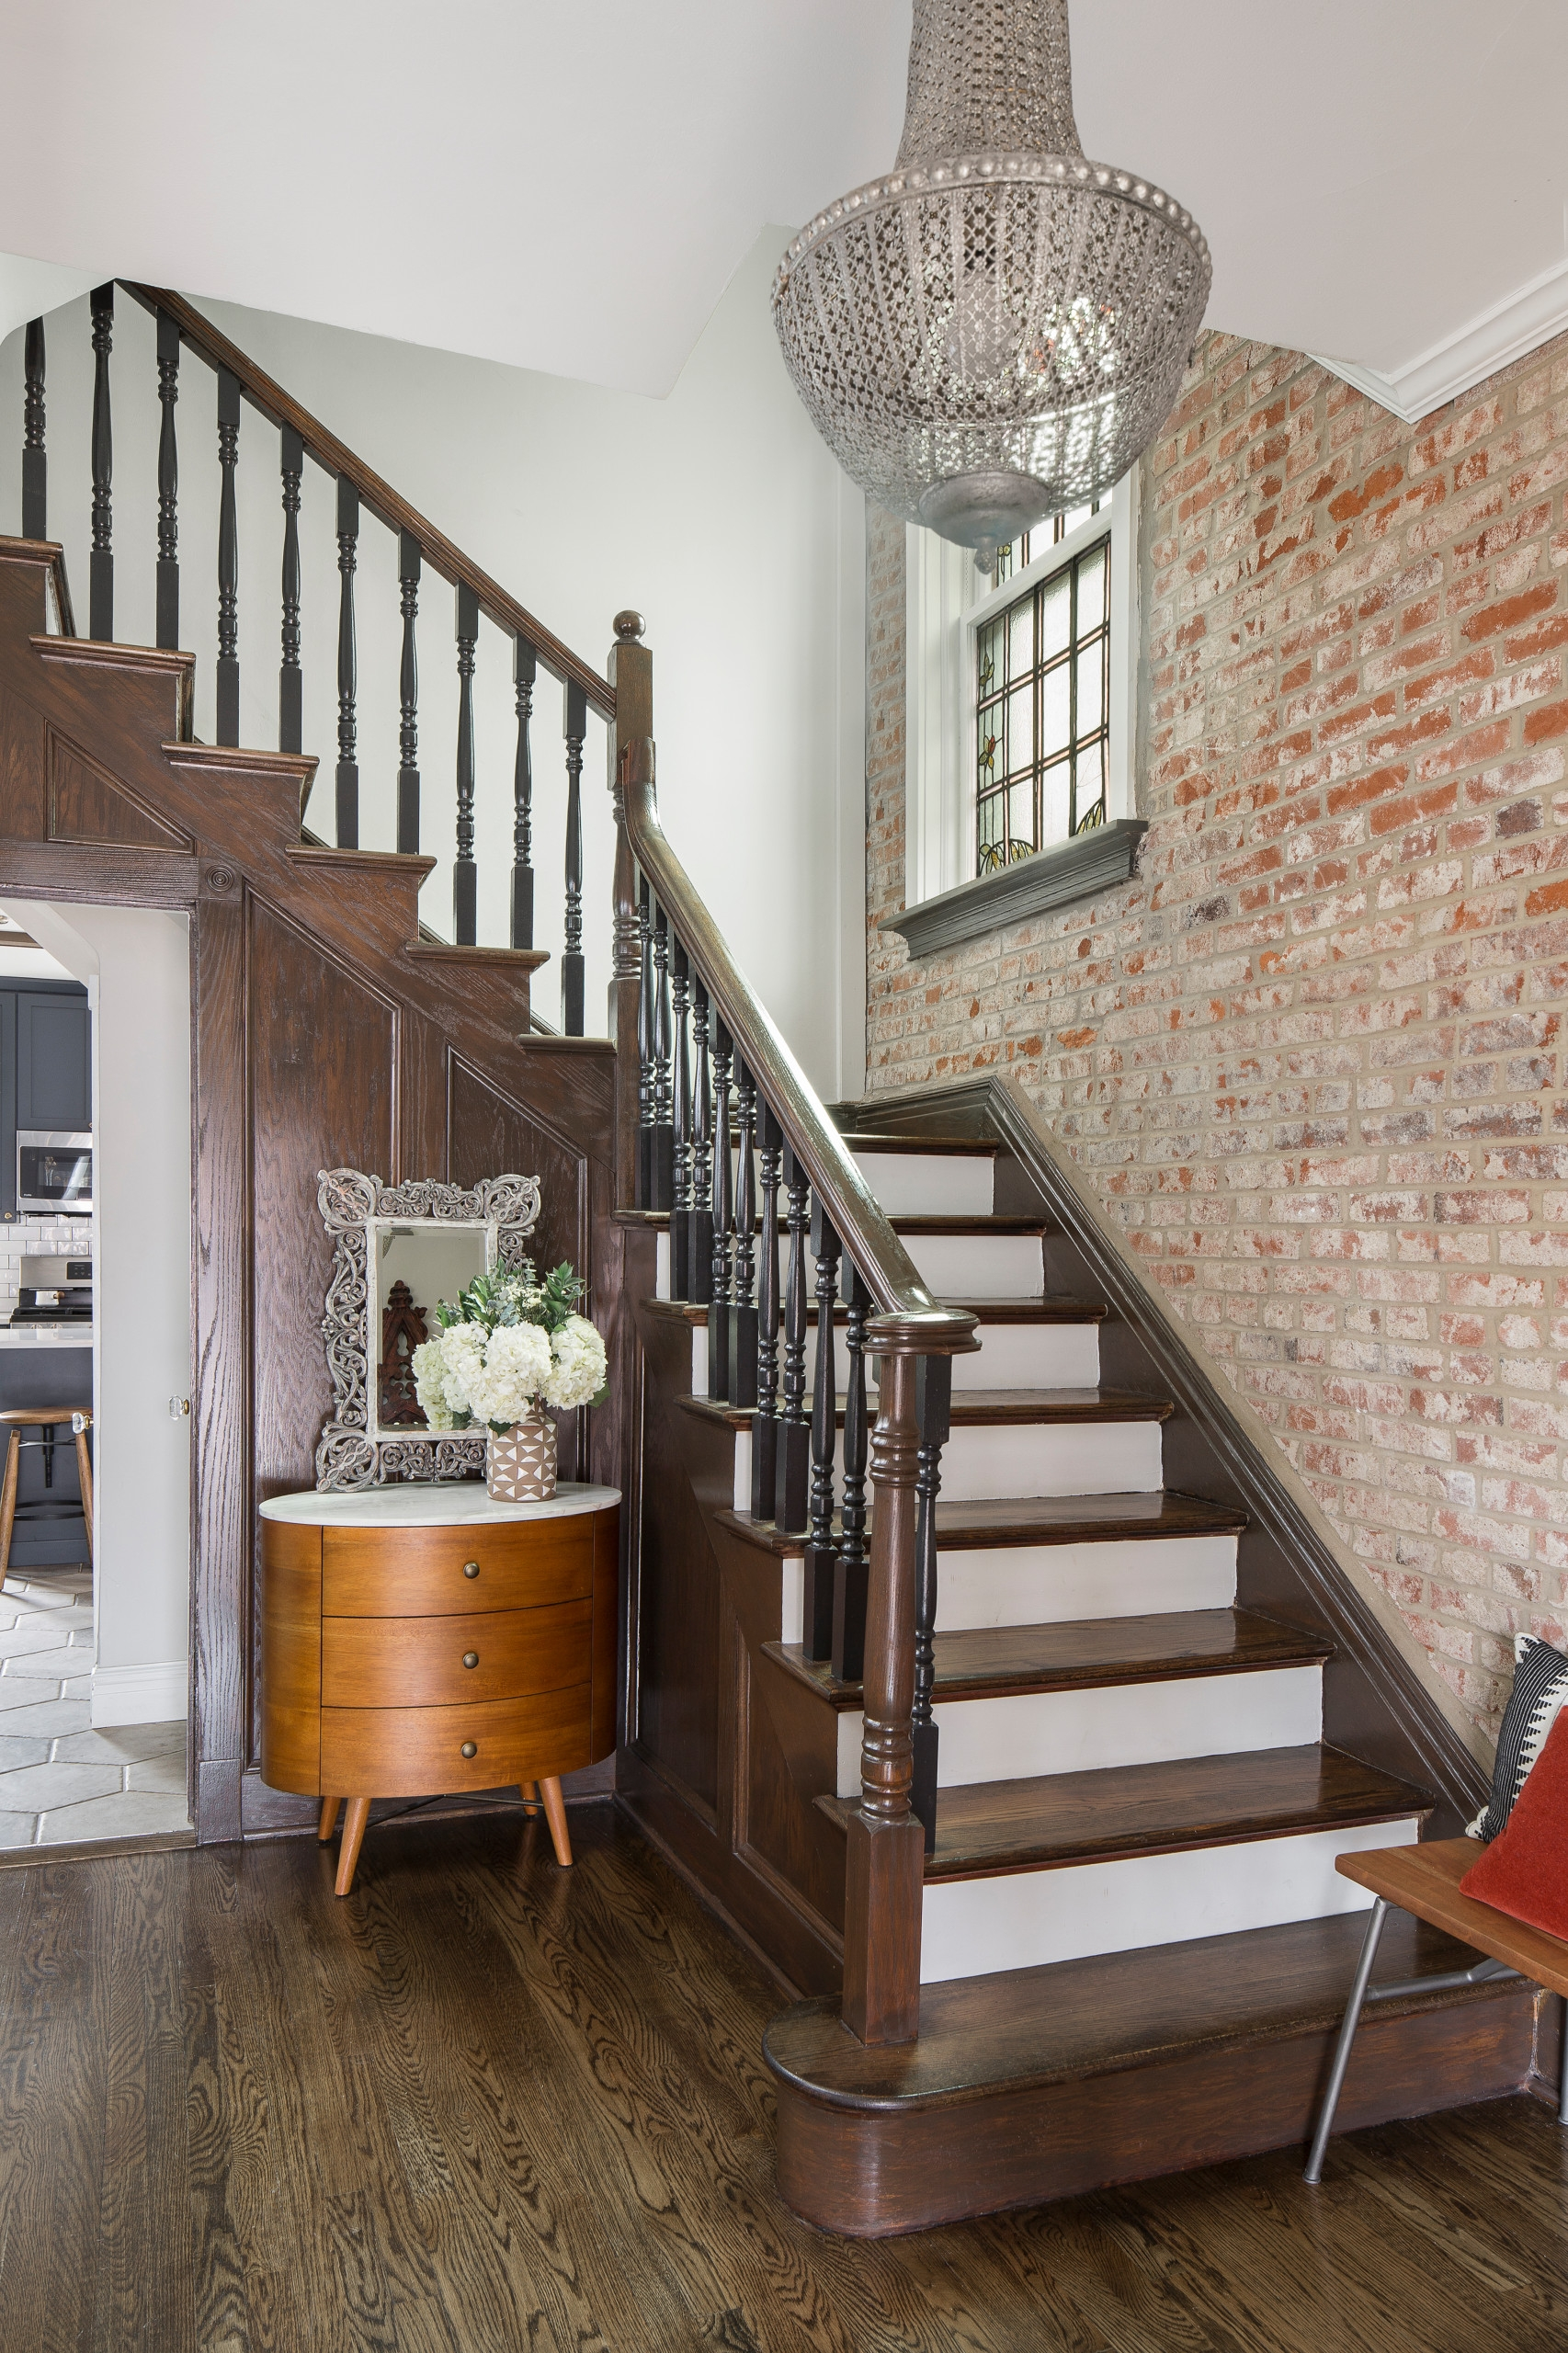 75 Beautiful Staircase Pictures Ideas September 2020 Houzz | Steps Side Wall Designs | Bedroom | Small House | Marble | Dining Room | Wall Highlight